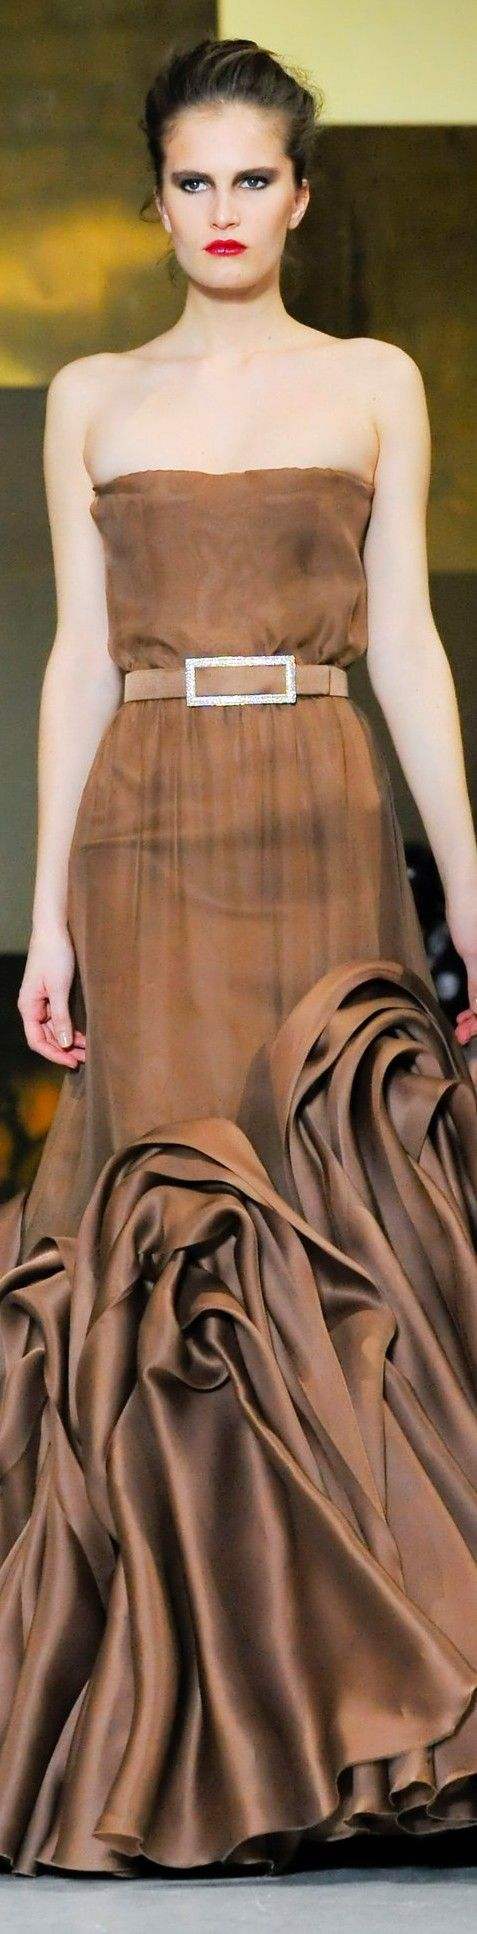 Stephane Rolland - I would love this gown in a different color - I'm thinking a soft pink so the billowy folds would look like cotton candy!  I would also like the top to have a higher bodice - just me - I am a little fuller than this very thin model - so on me this would be much too revealing!